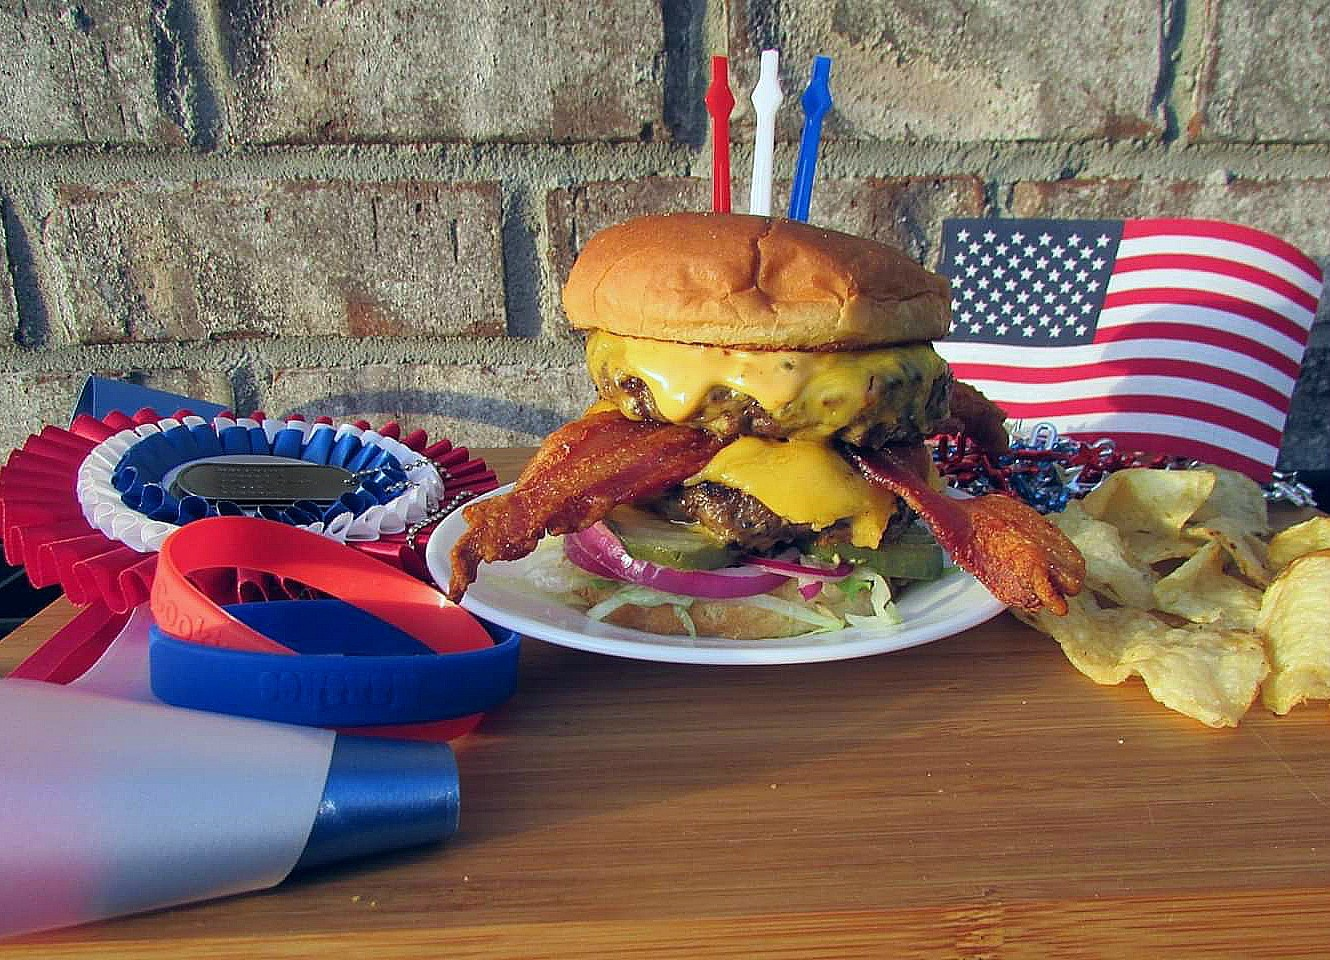 Five Patriotic Burger Recipes You'll Want to Celebrate